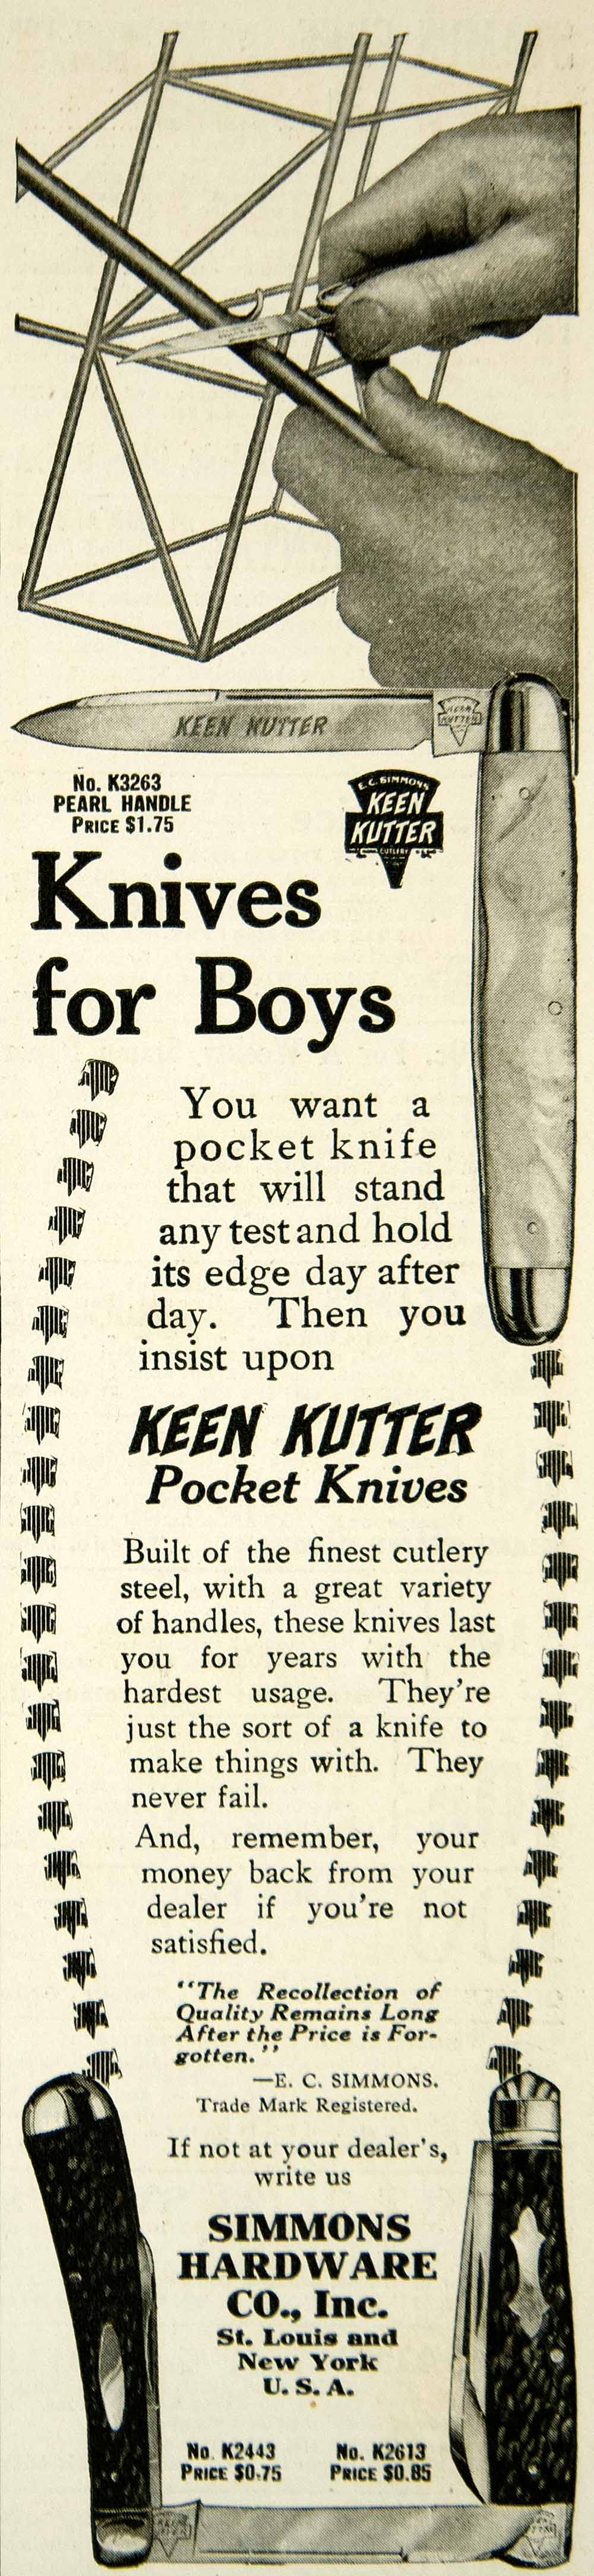 1912 Ad Keen Kutter Boys Pocket Knives Simmons Hardware Pearl Handle Blade YAB1